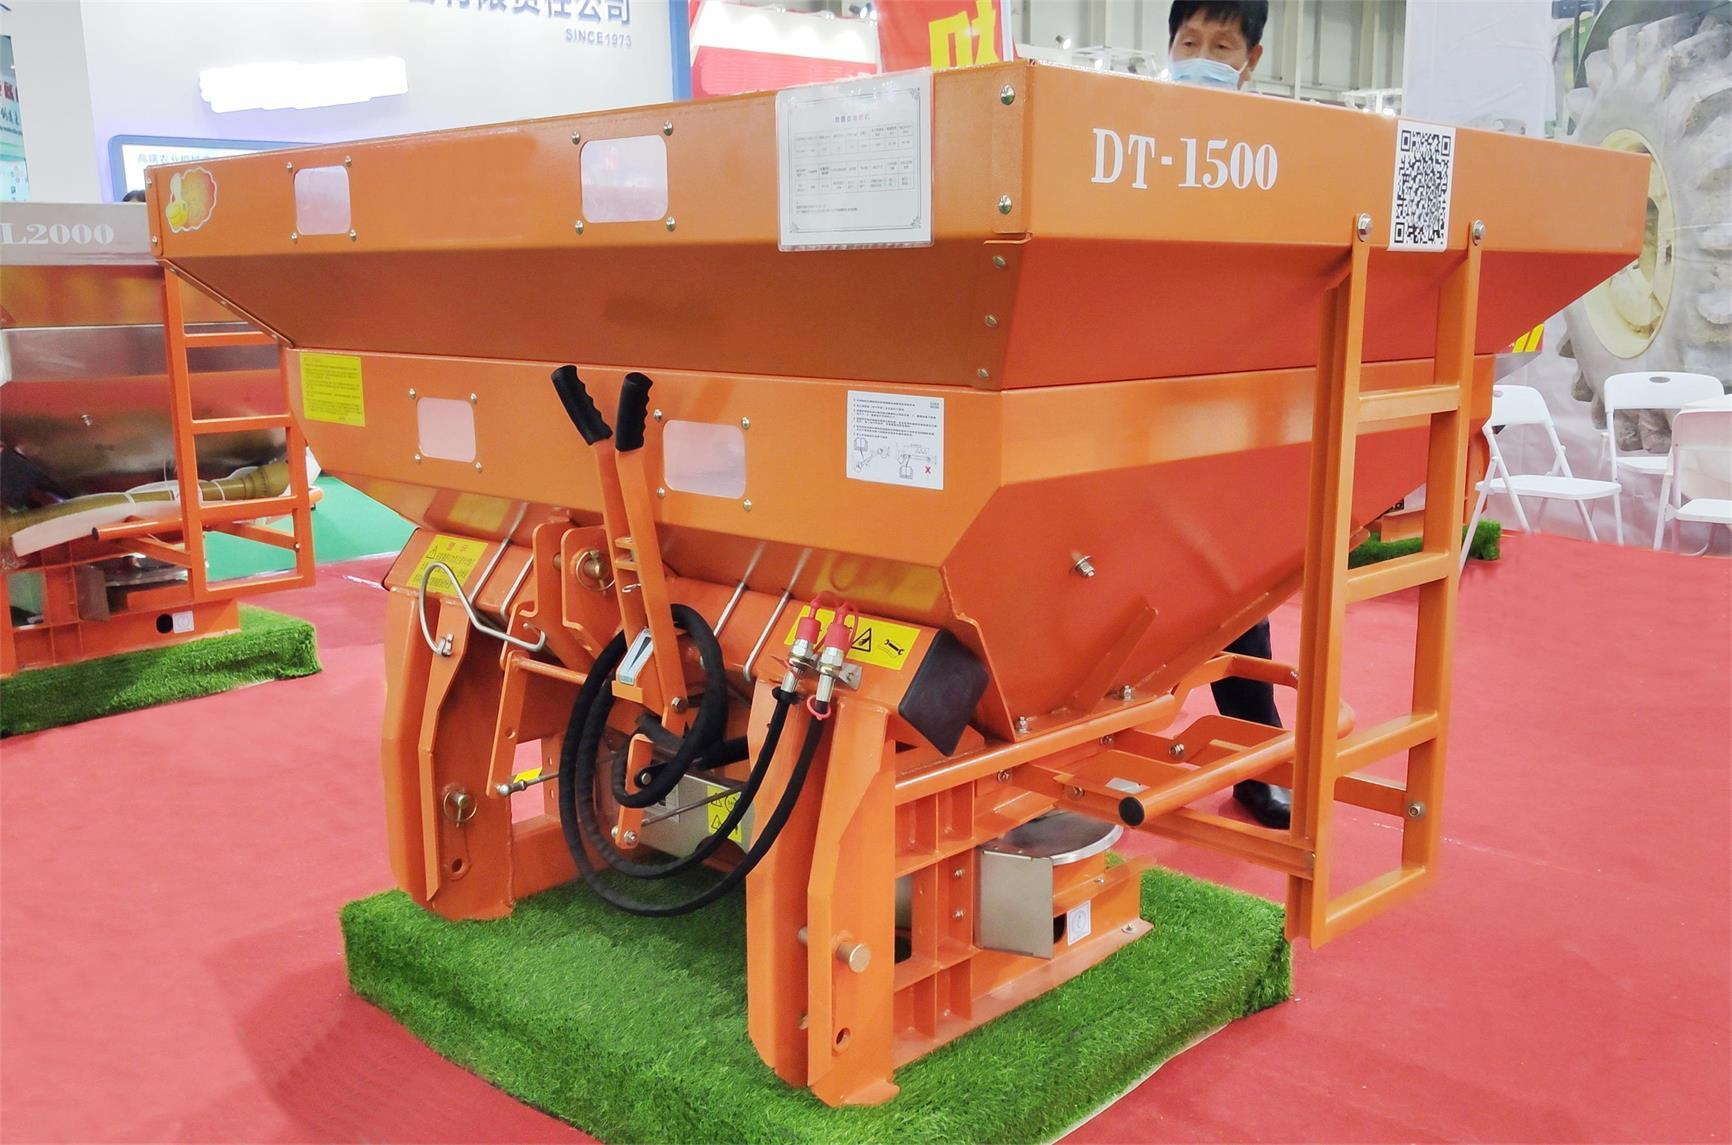 Tractor farm fertilizer spreader machine